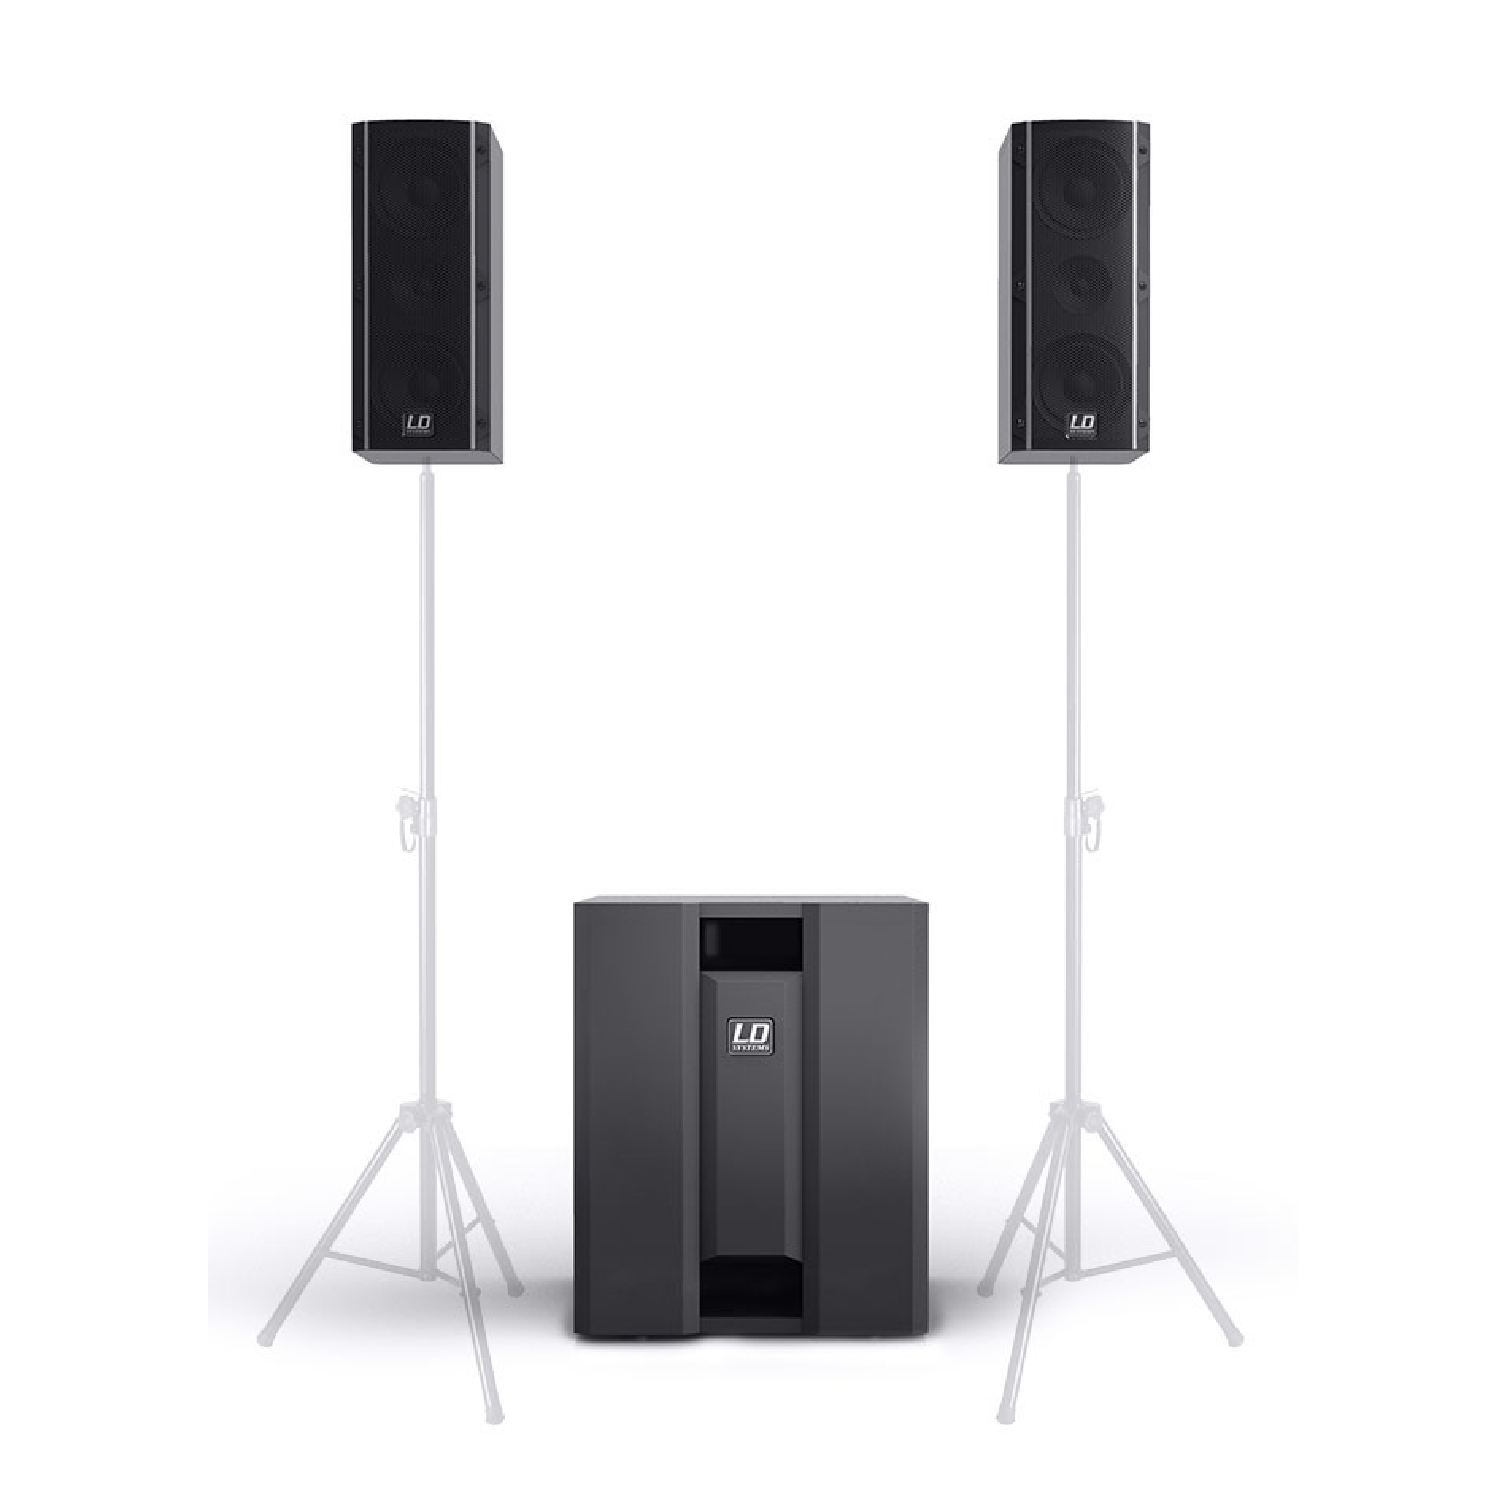 2.1 Portable Active PA System with 3 Channel mixer 1400 W Peak   LD DAVE 8 ROADIE ld system